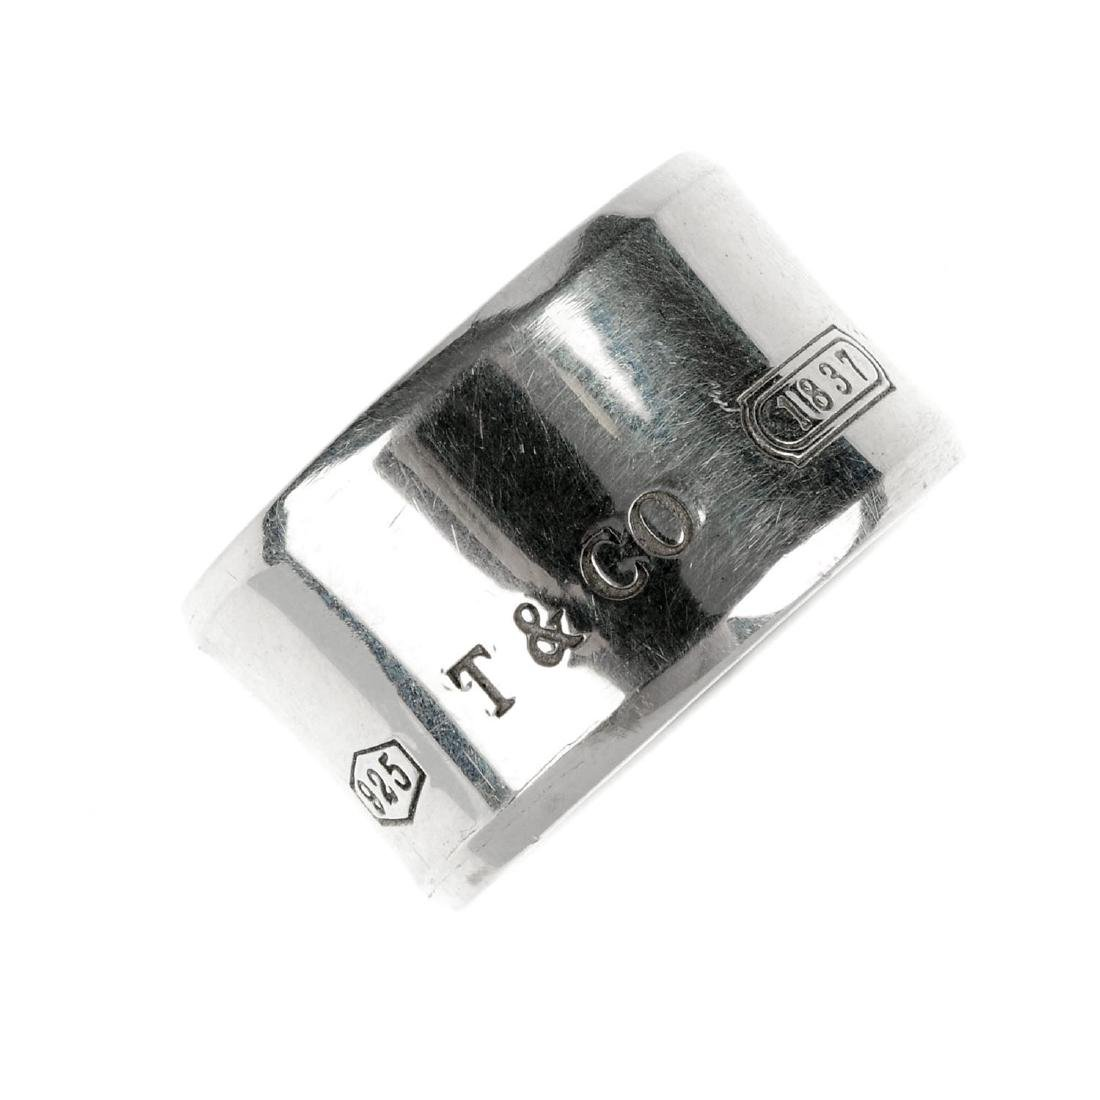 TIFFANY & CO. - a ring. The broad band engraved '925 T